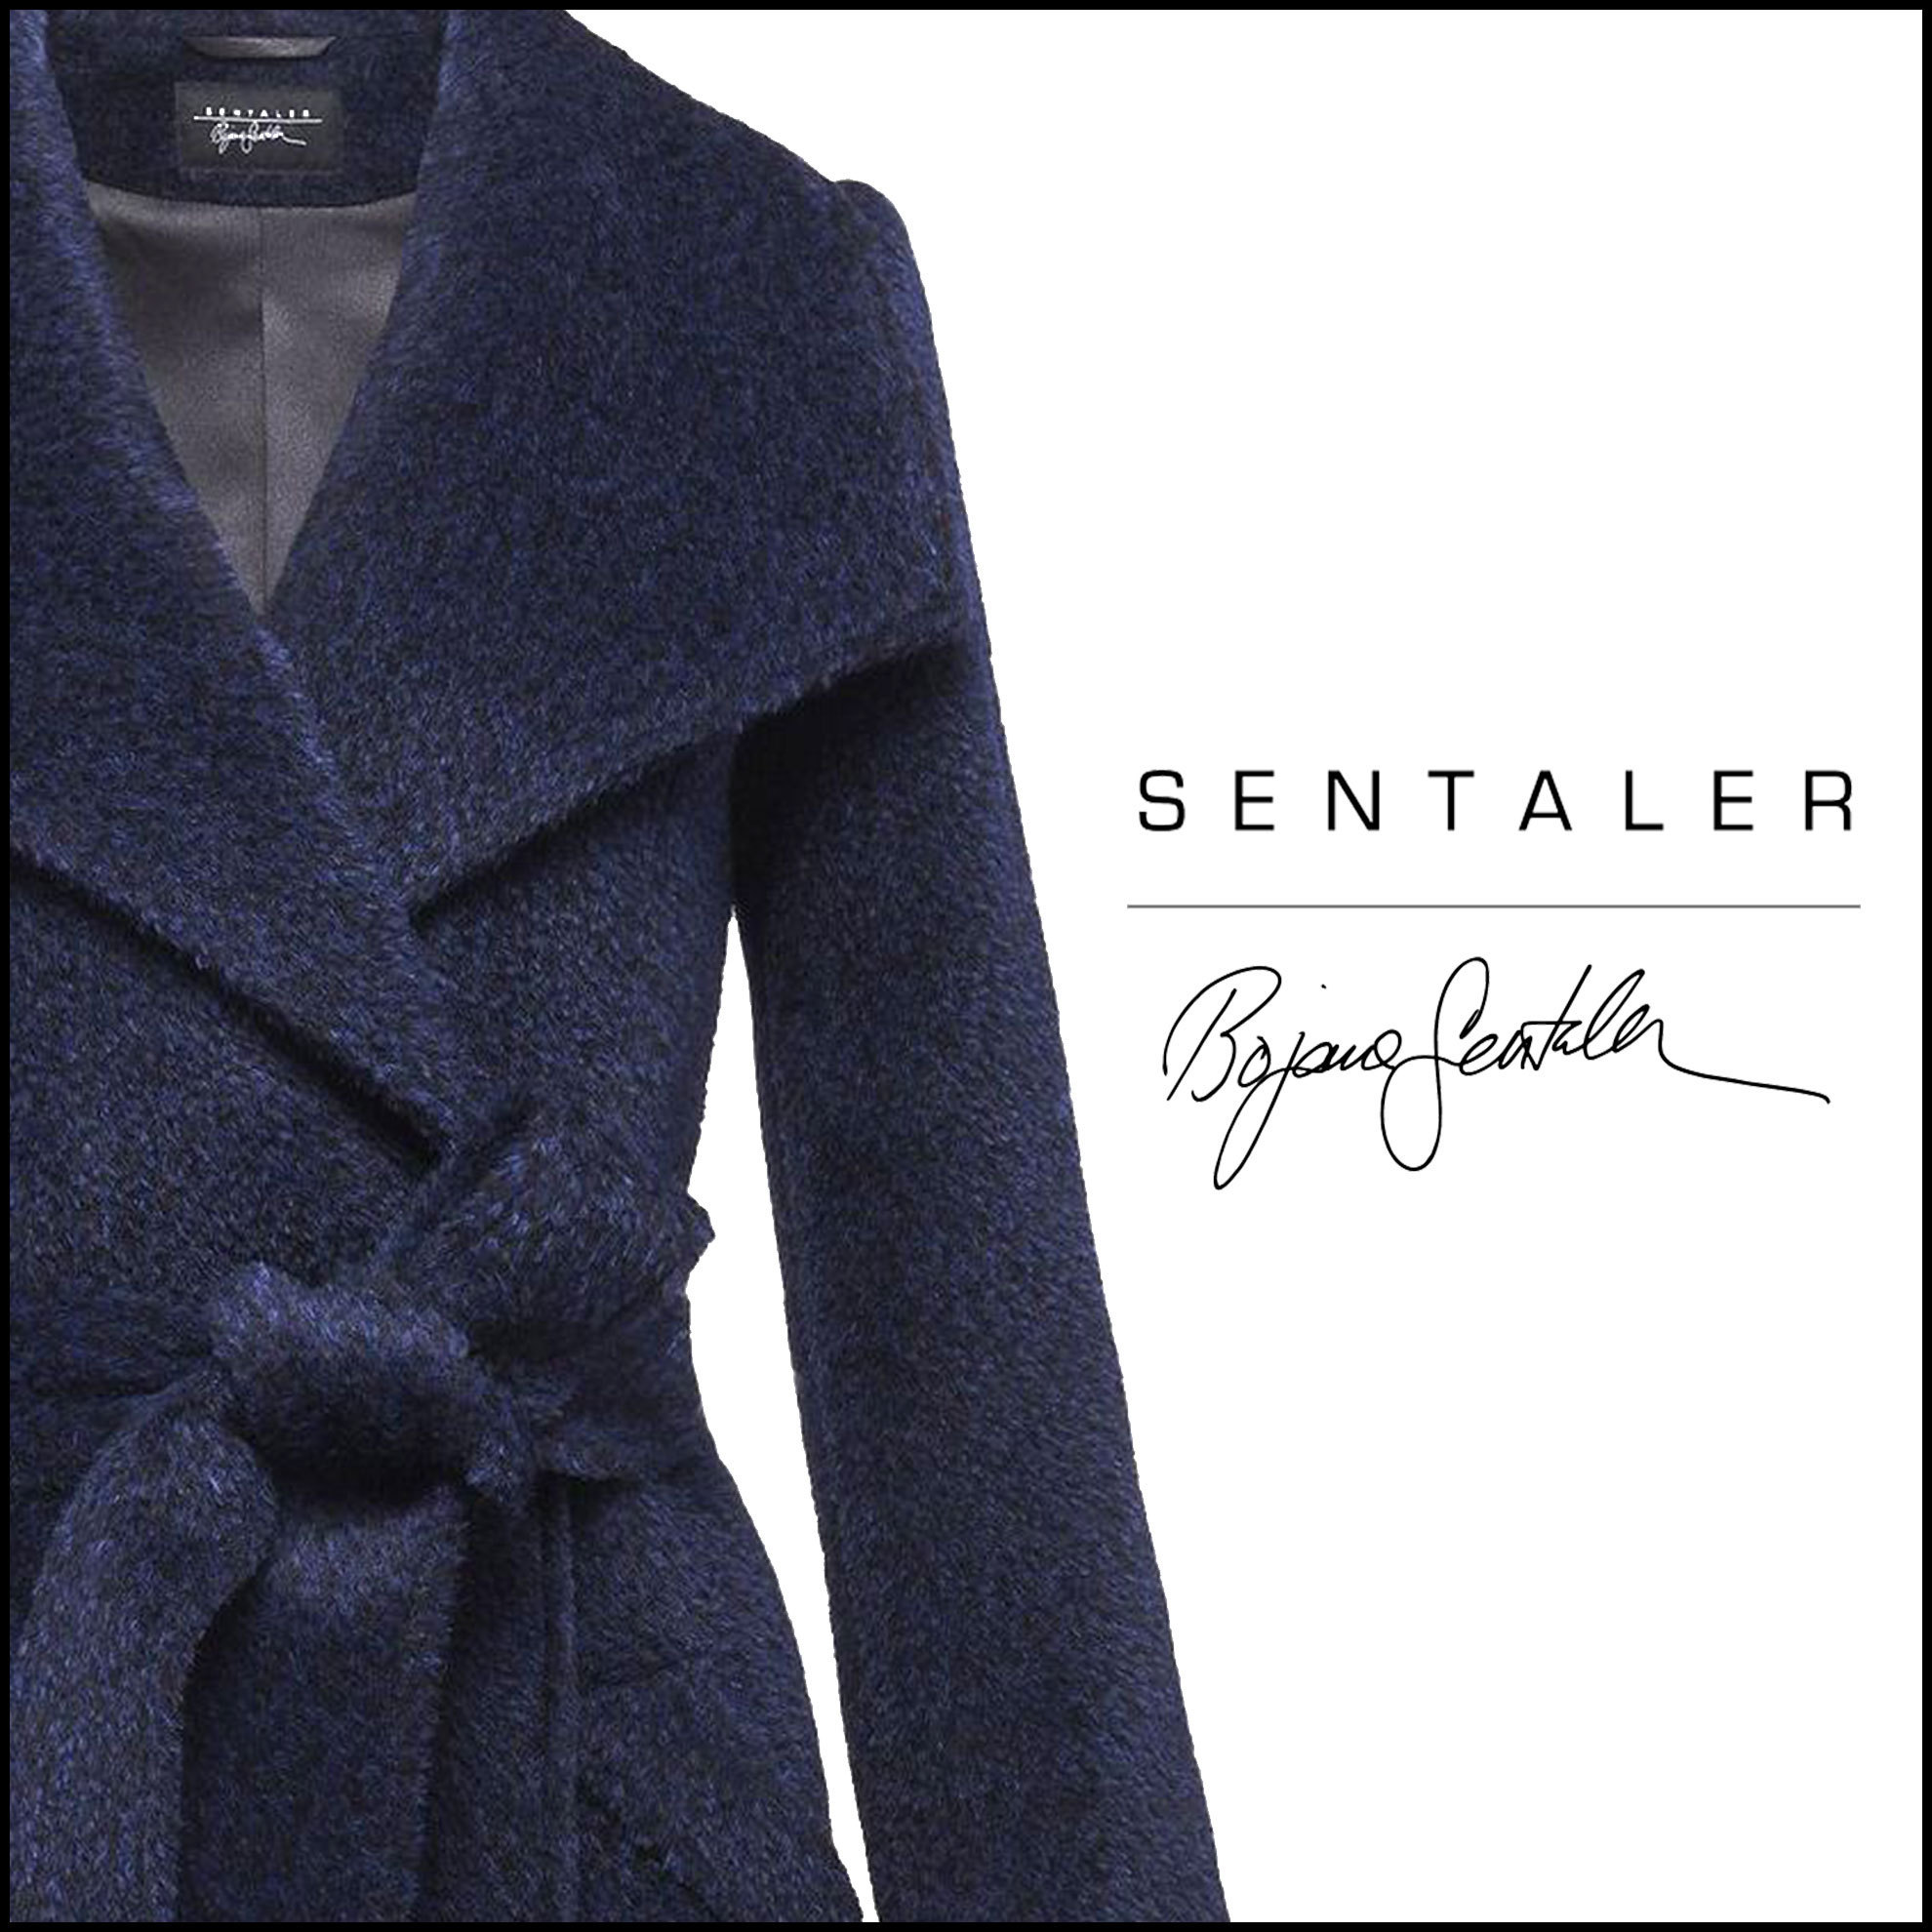 shop sentaler clothing